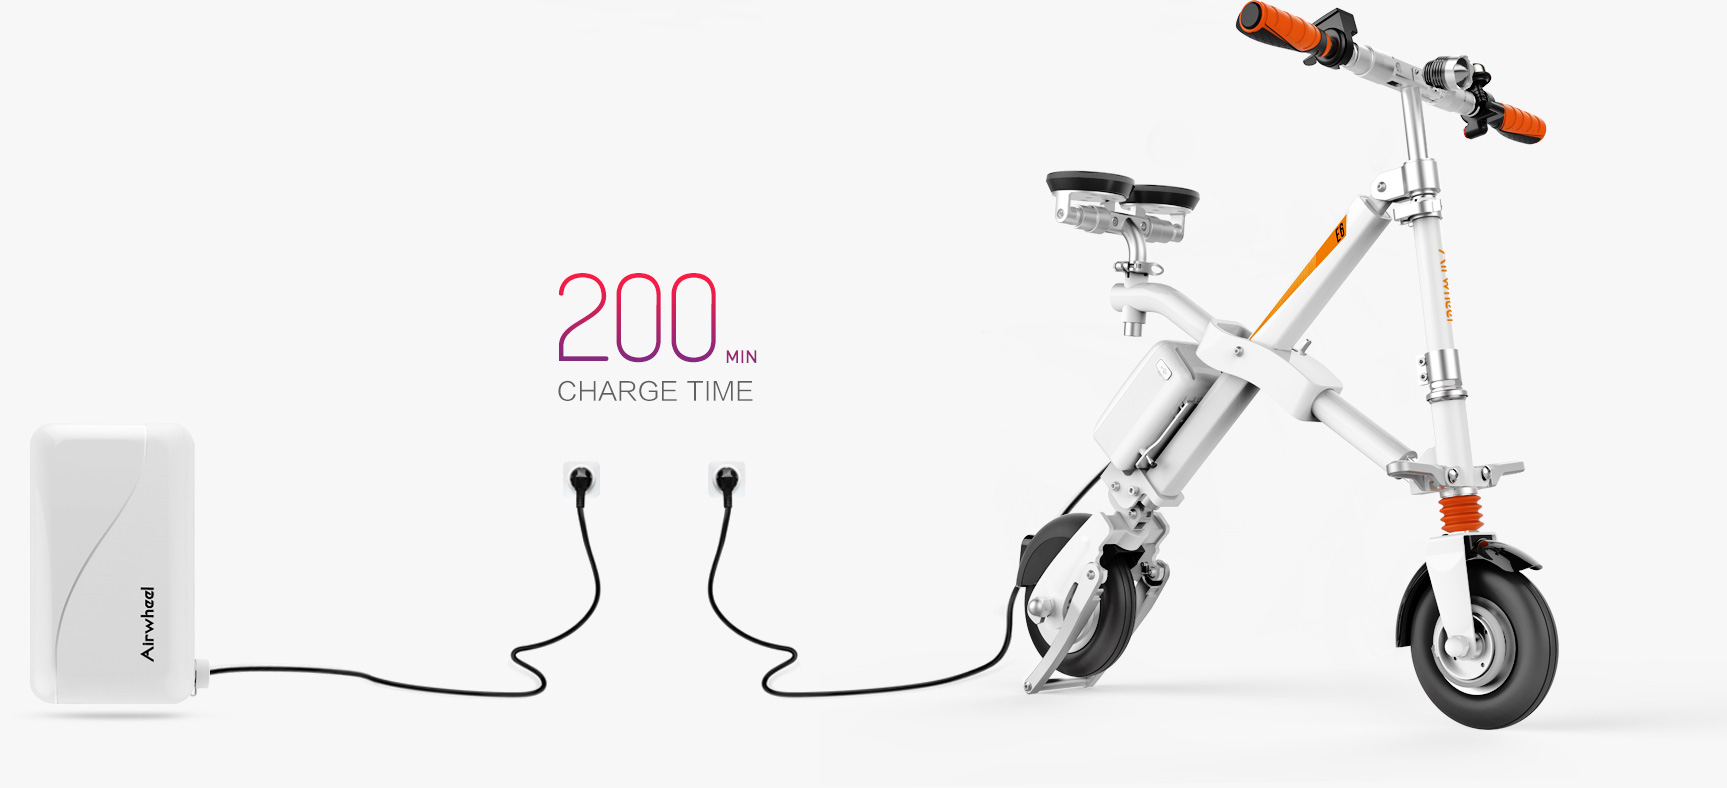 Airwheel E6 USB